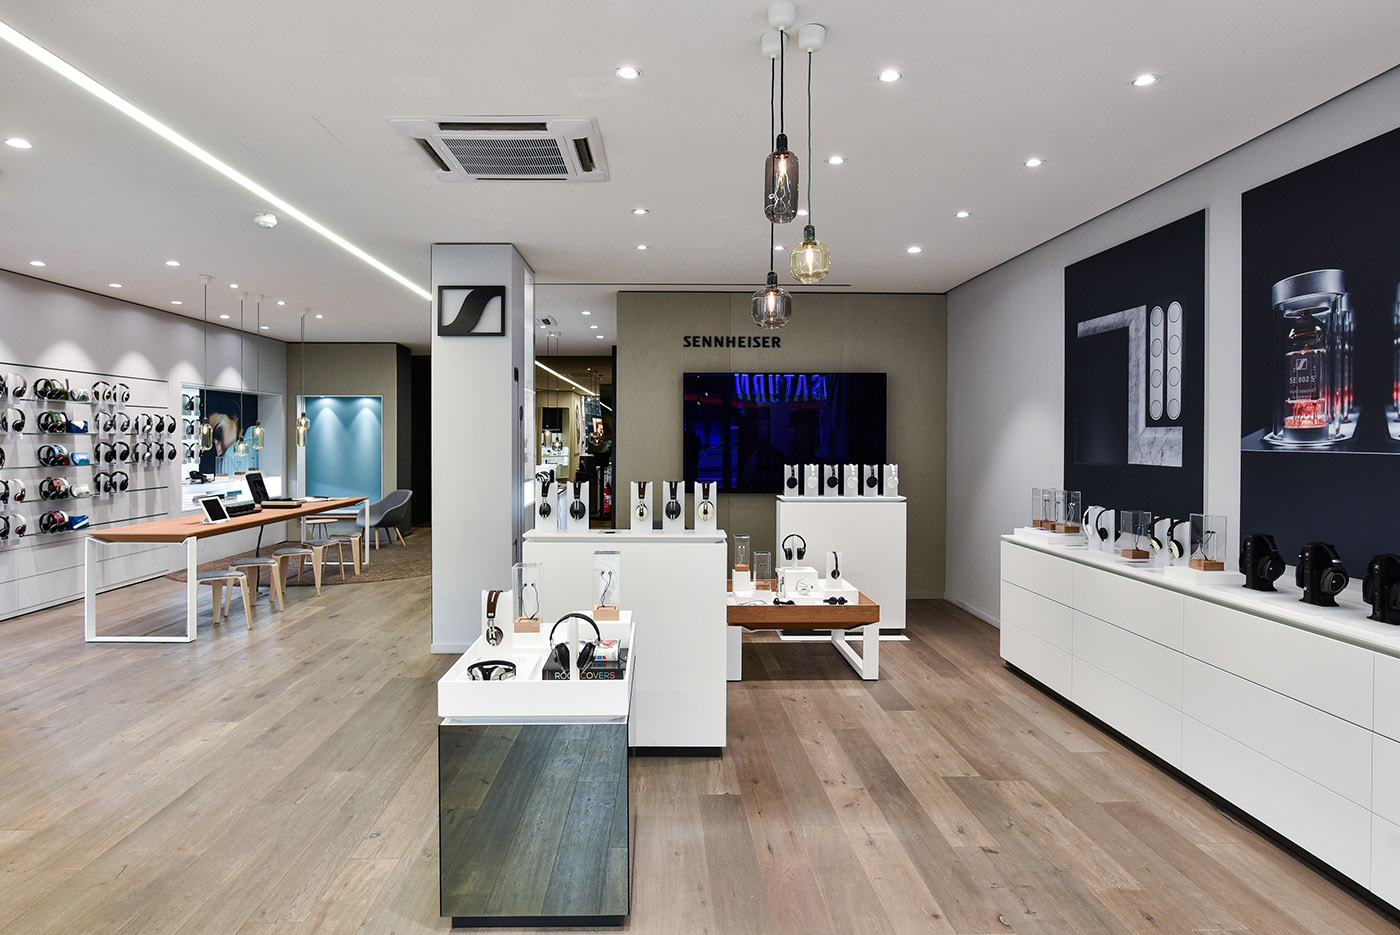 retail design sennheiser store berlin on behance. Black Bedroom Furniture Sets. Home Design Ideas